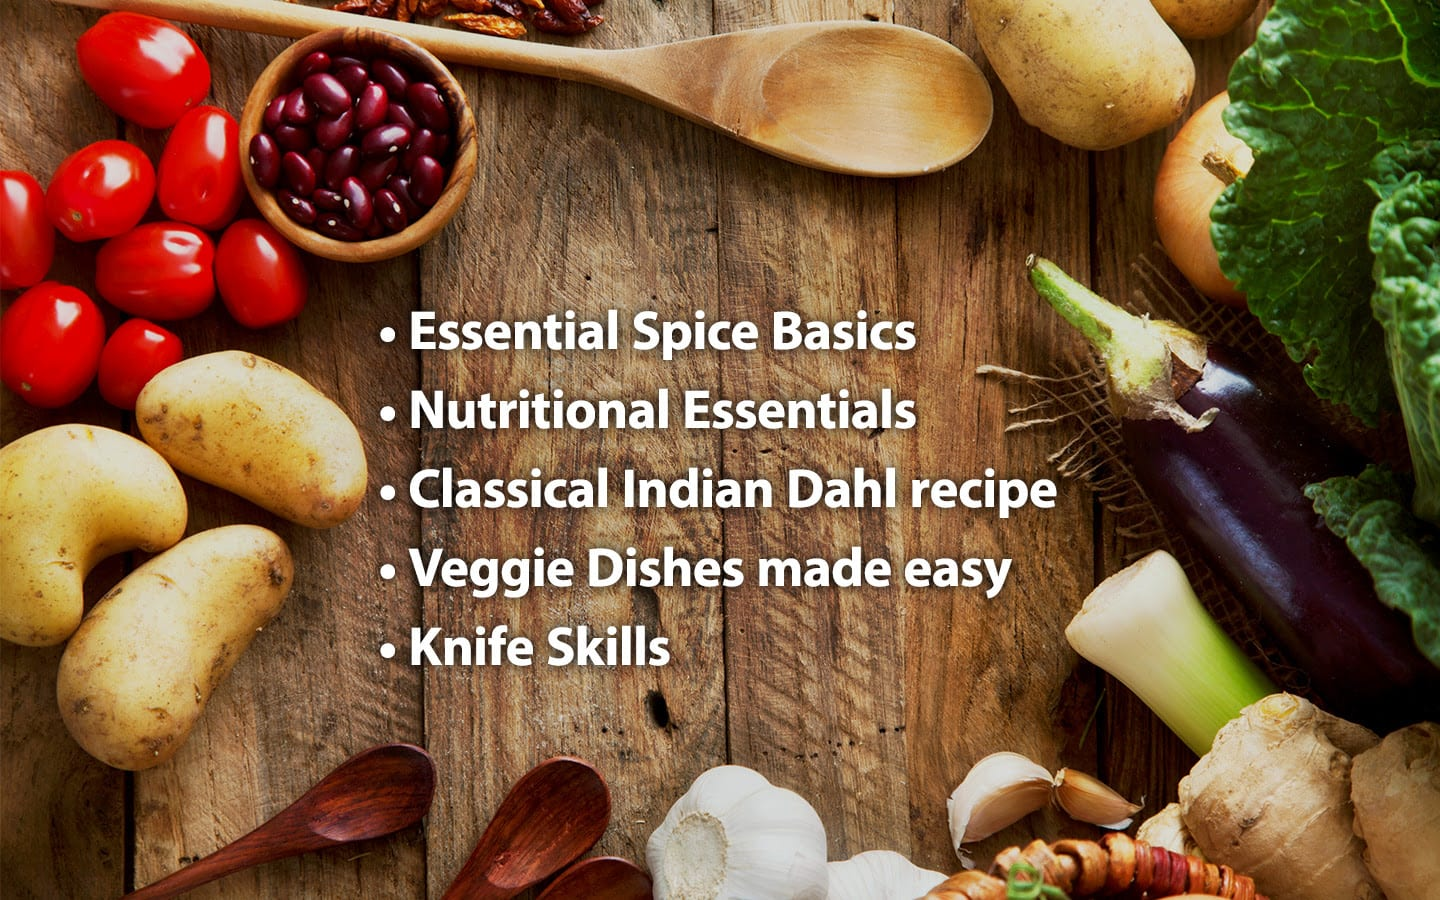 Basic features of the vegetarian cooking wellness retreat at the Amrit Yoga Institute